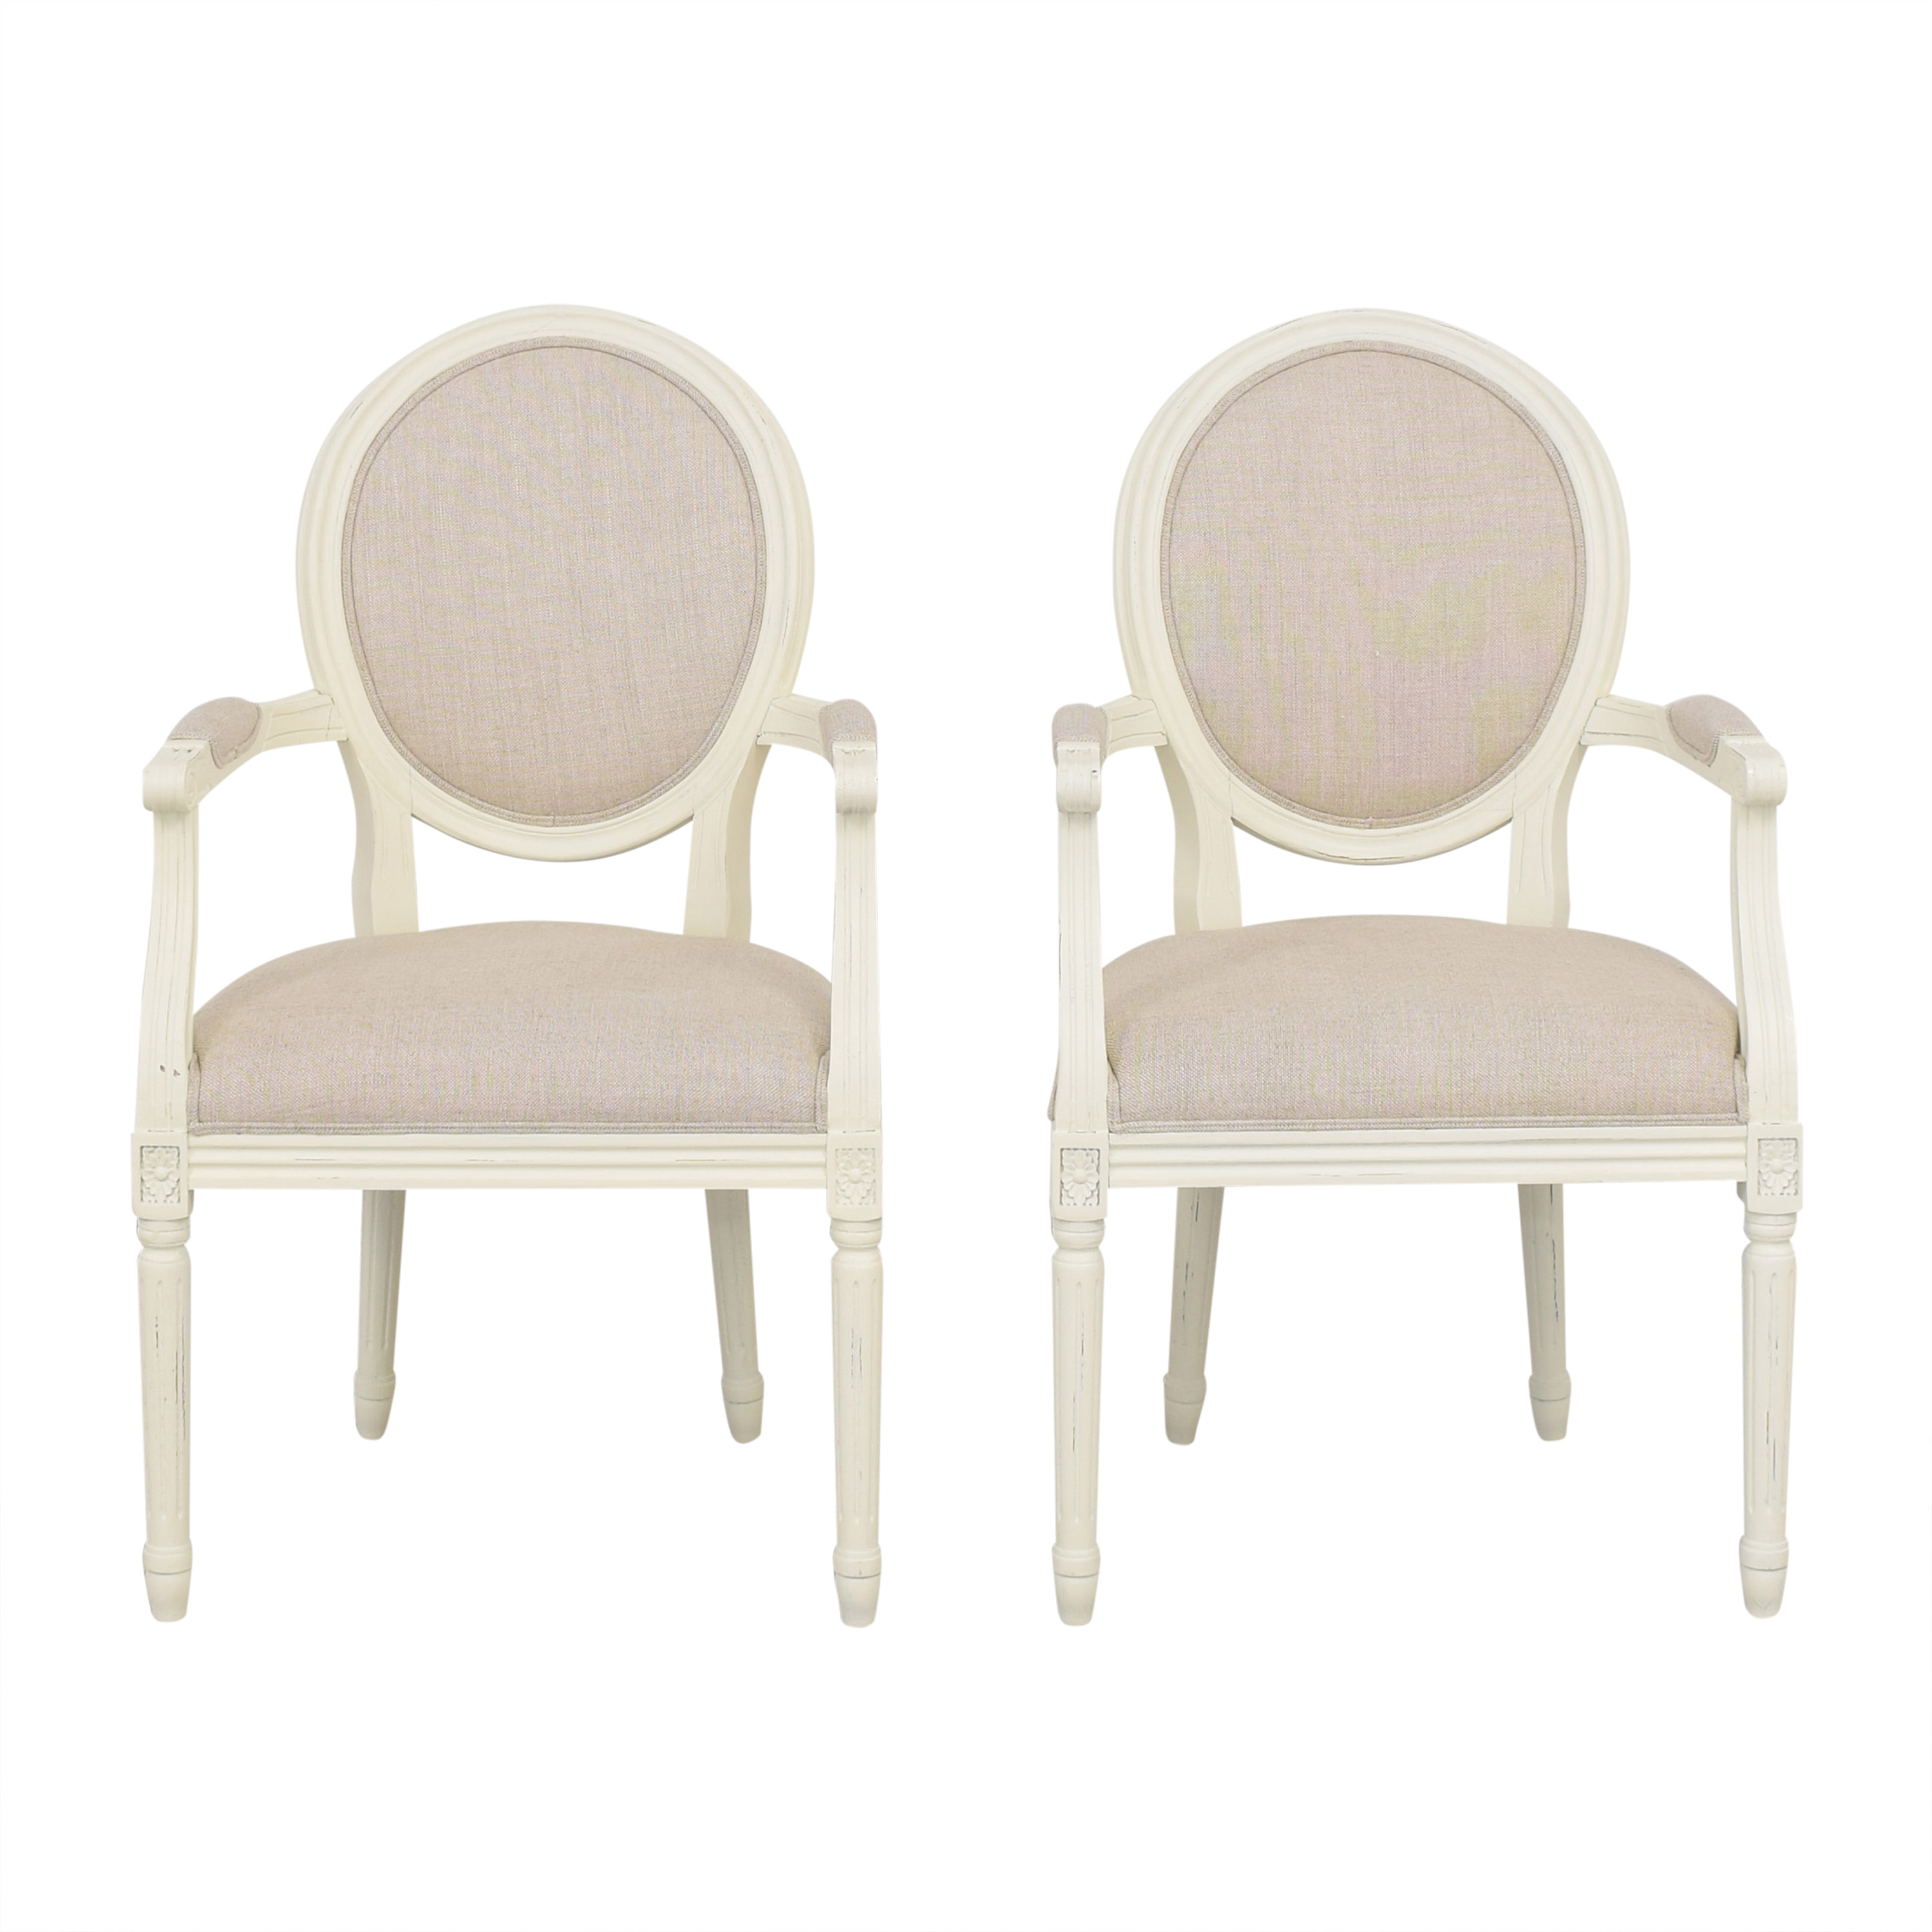 Restoration Hardware Restoration Hardware Vintage French Round Armchairs coupon